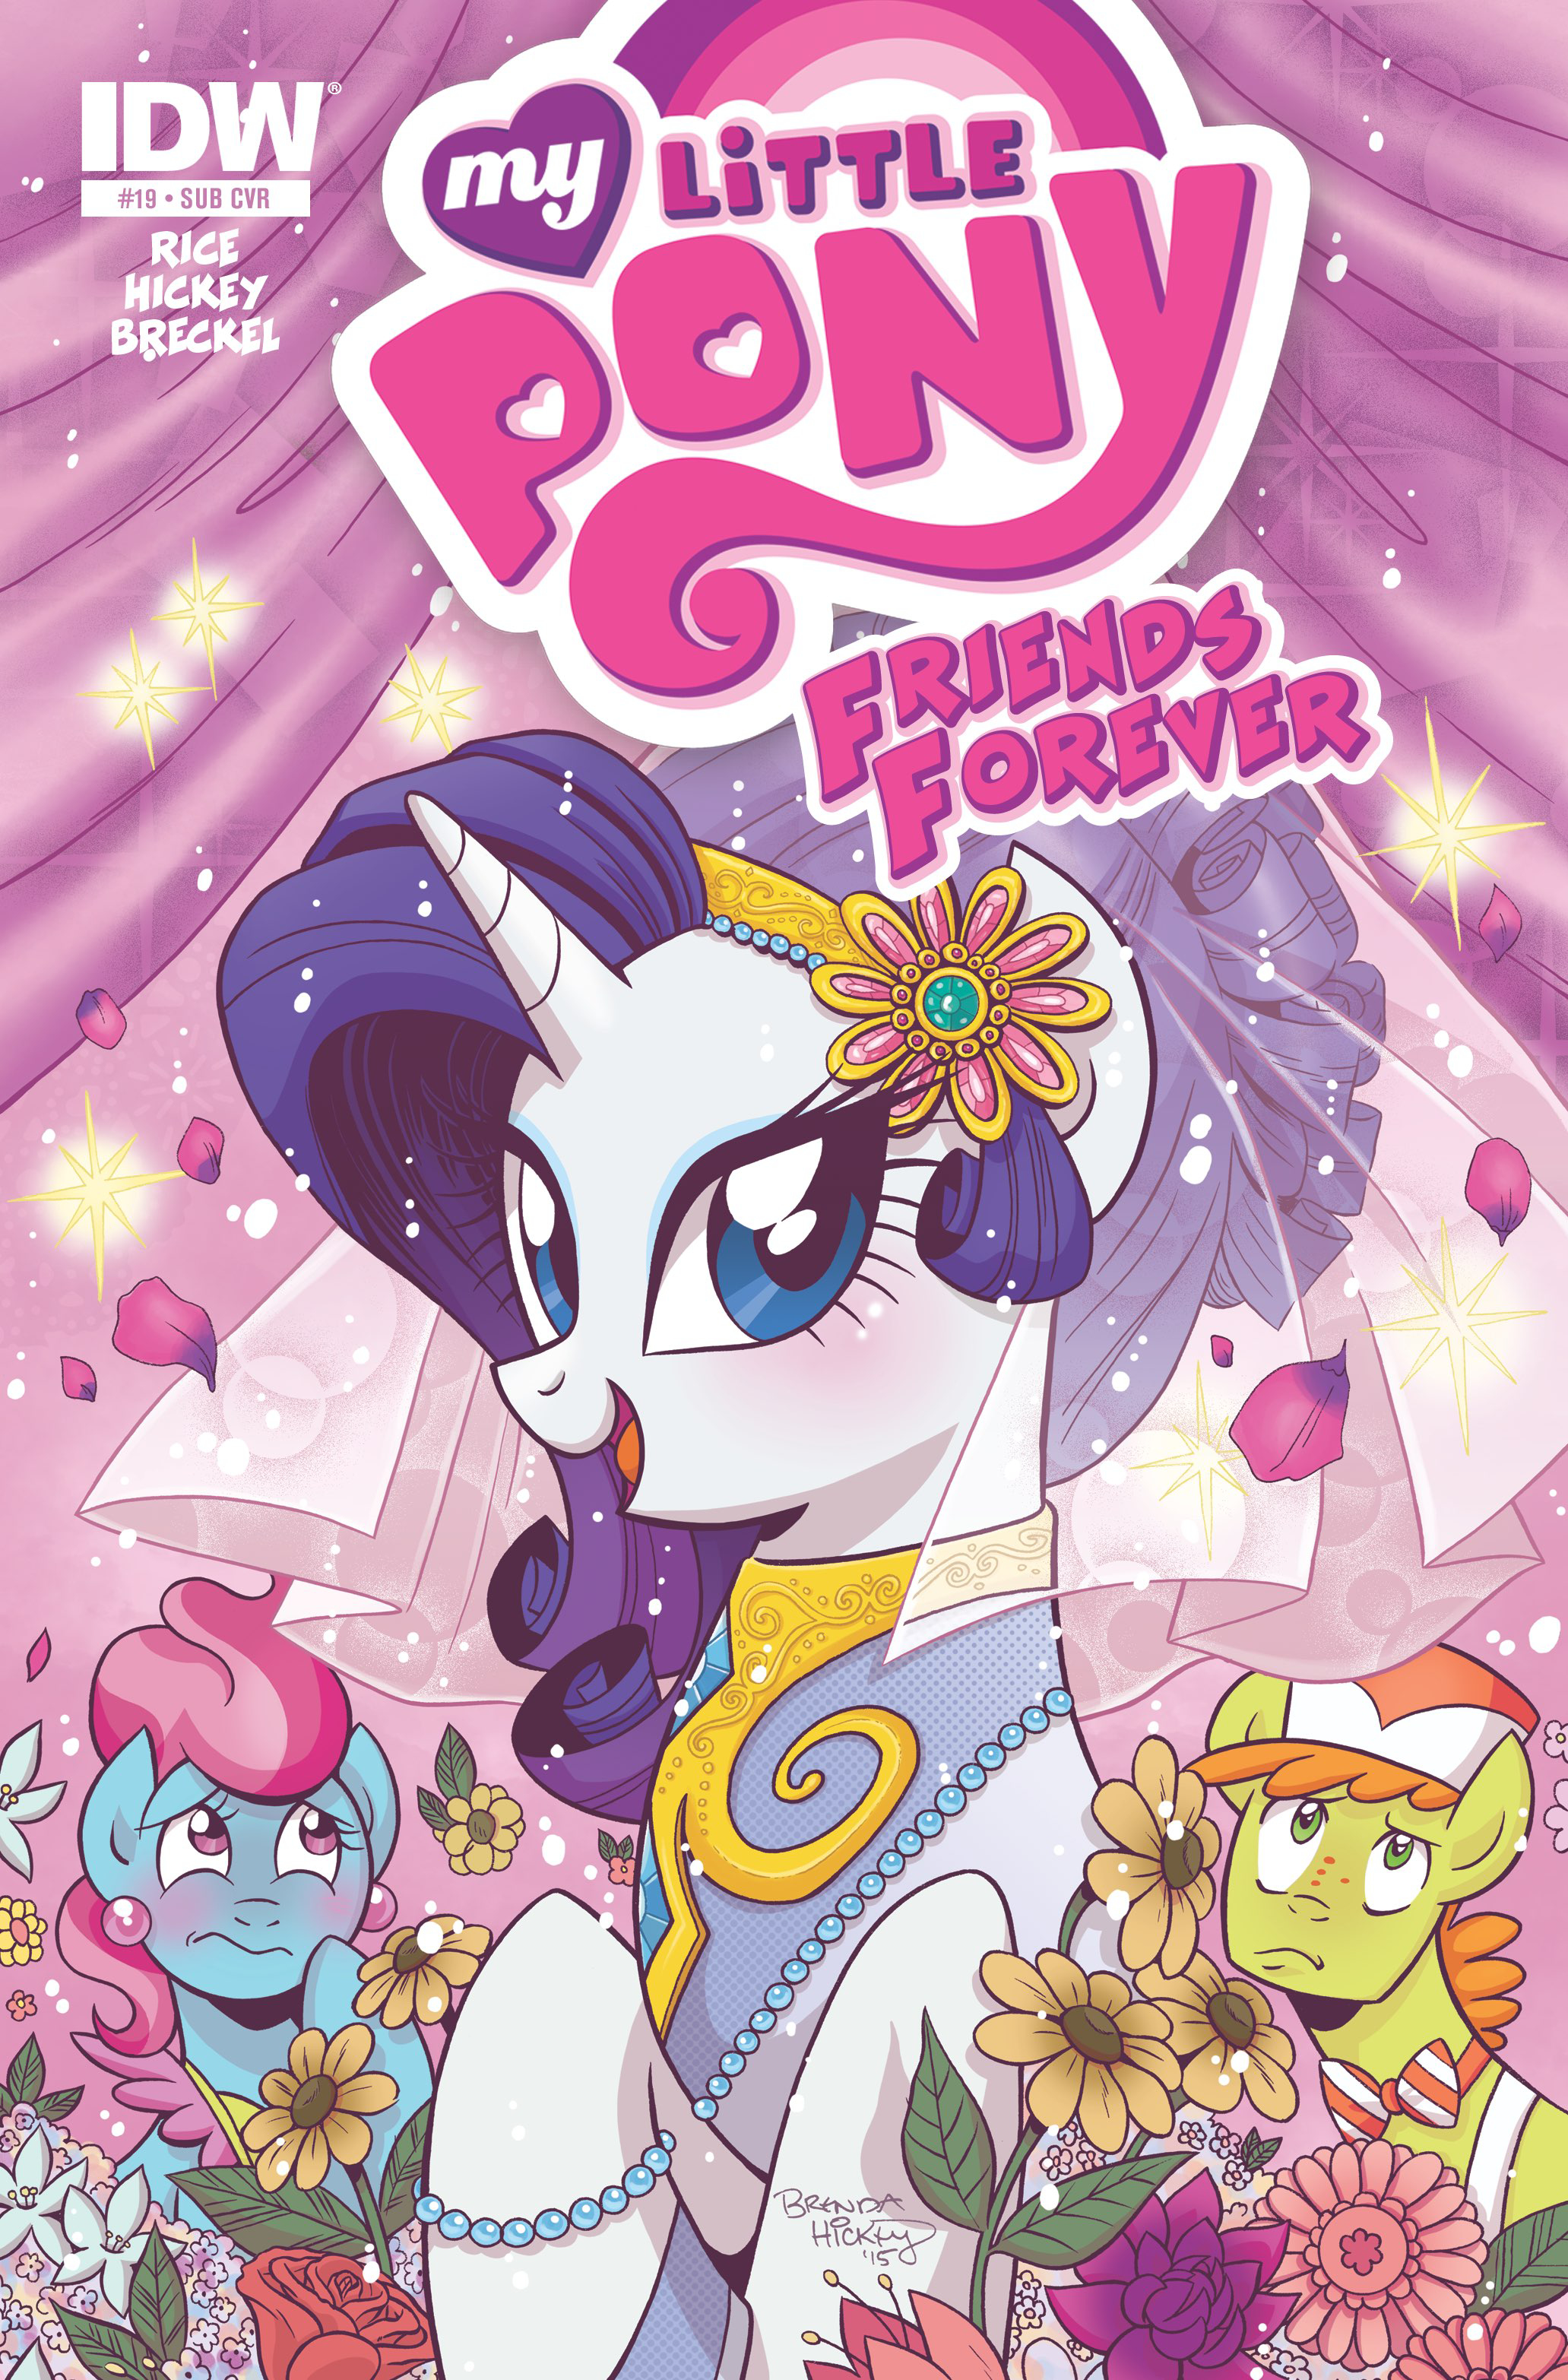 MY LITTLE PONY FRIENDS FOREVER #19 SUBSCRIPTION VAR